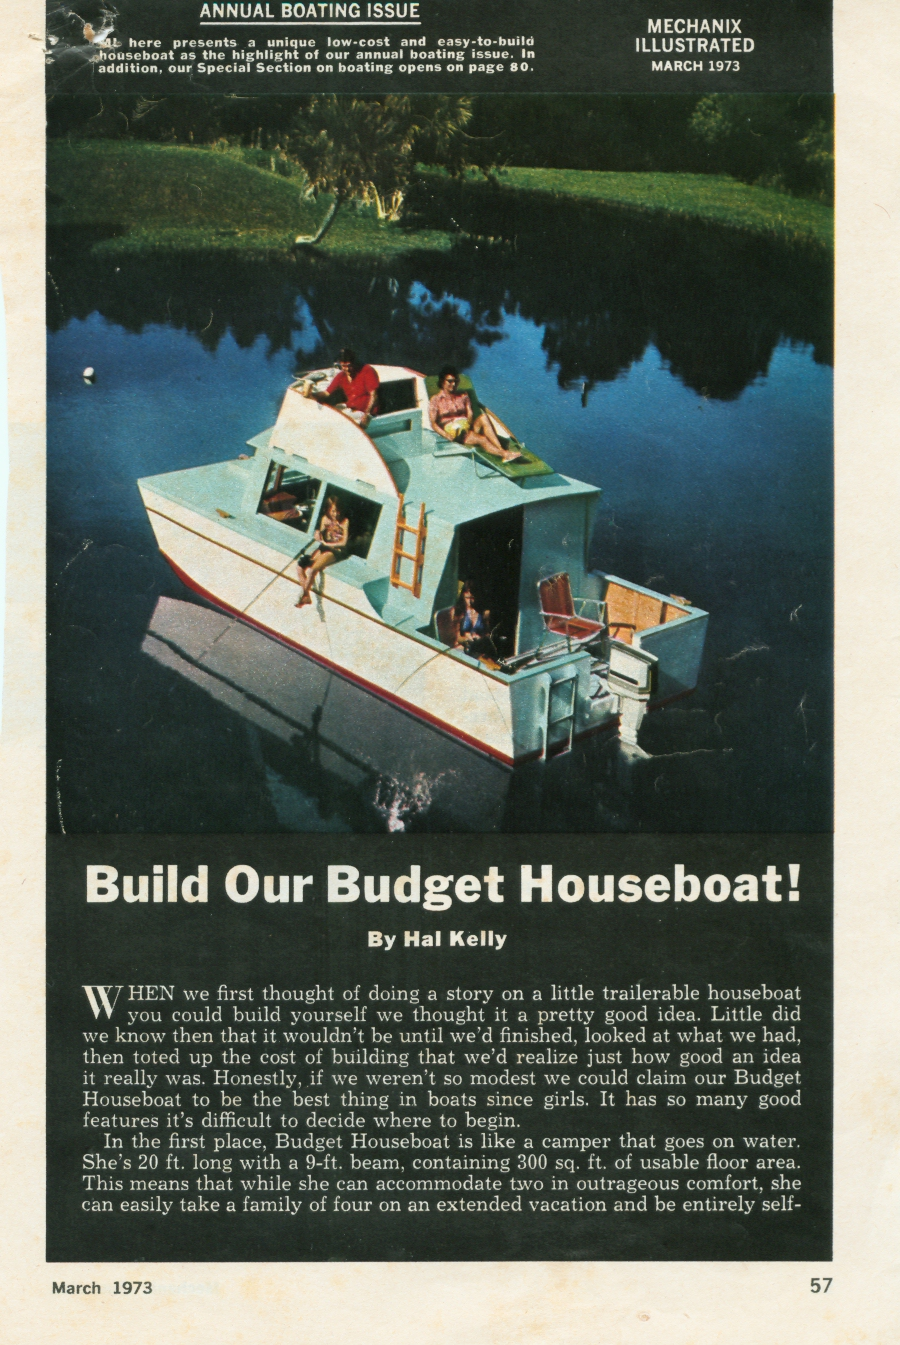 MechanixIllustrated BudgetHouseBoat